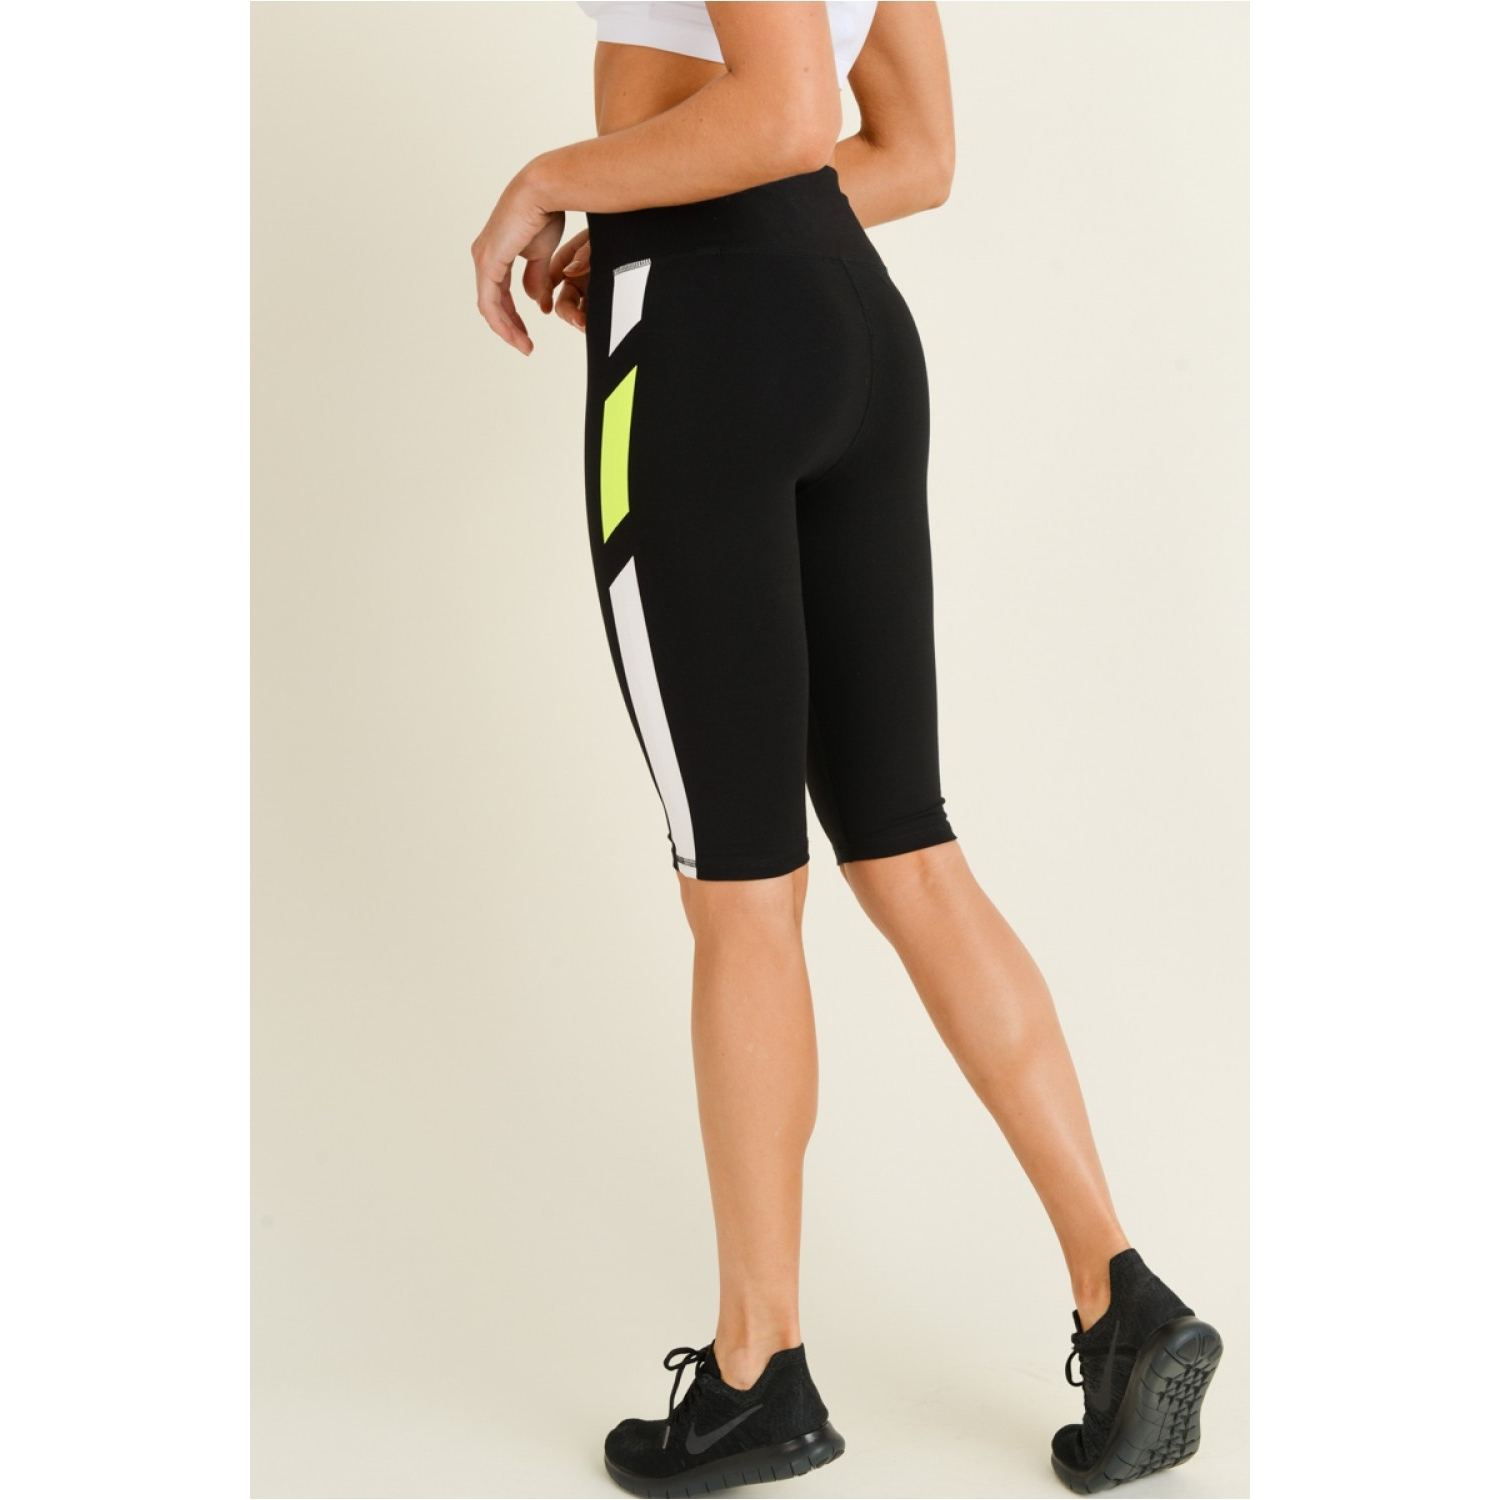 Neon Stripes Knee-Length Leggings SM